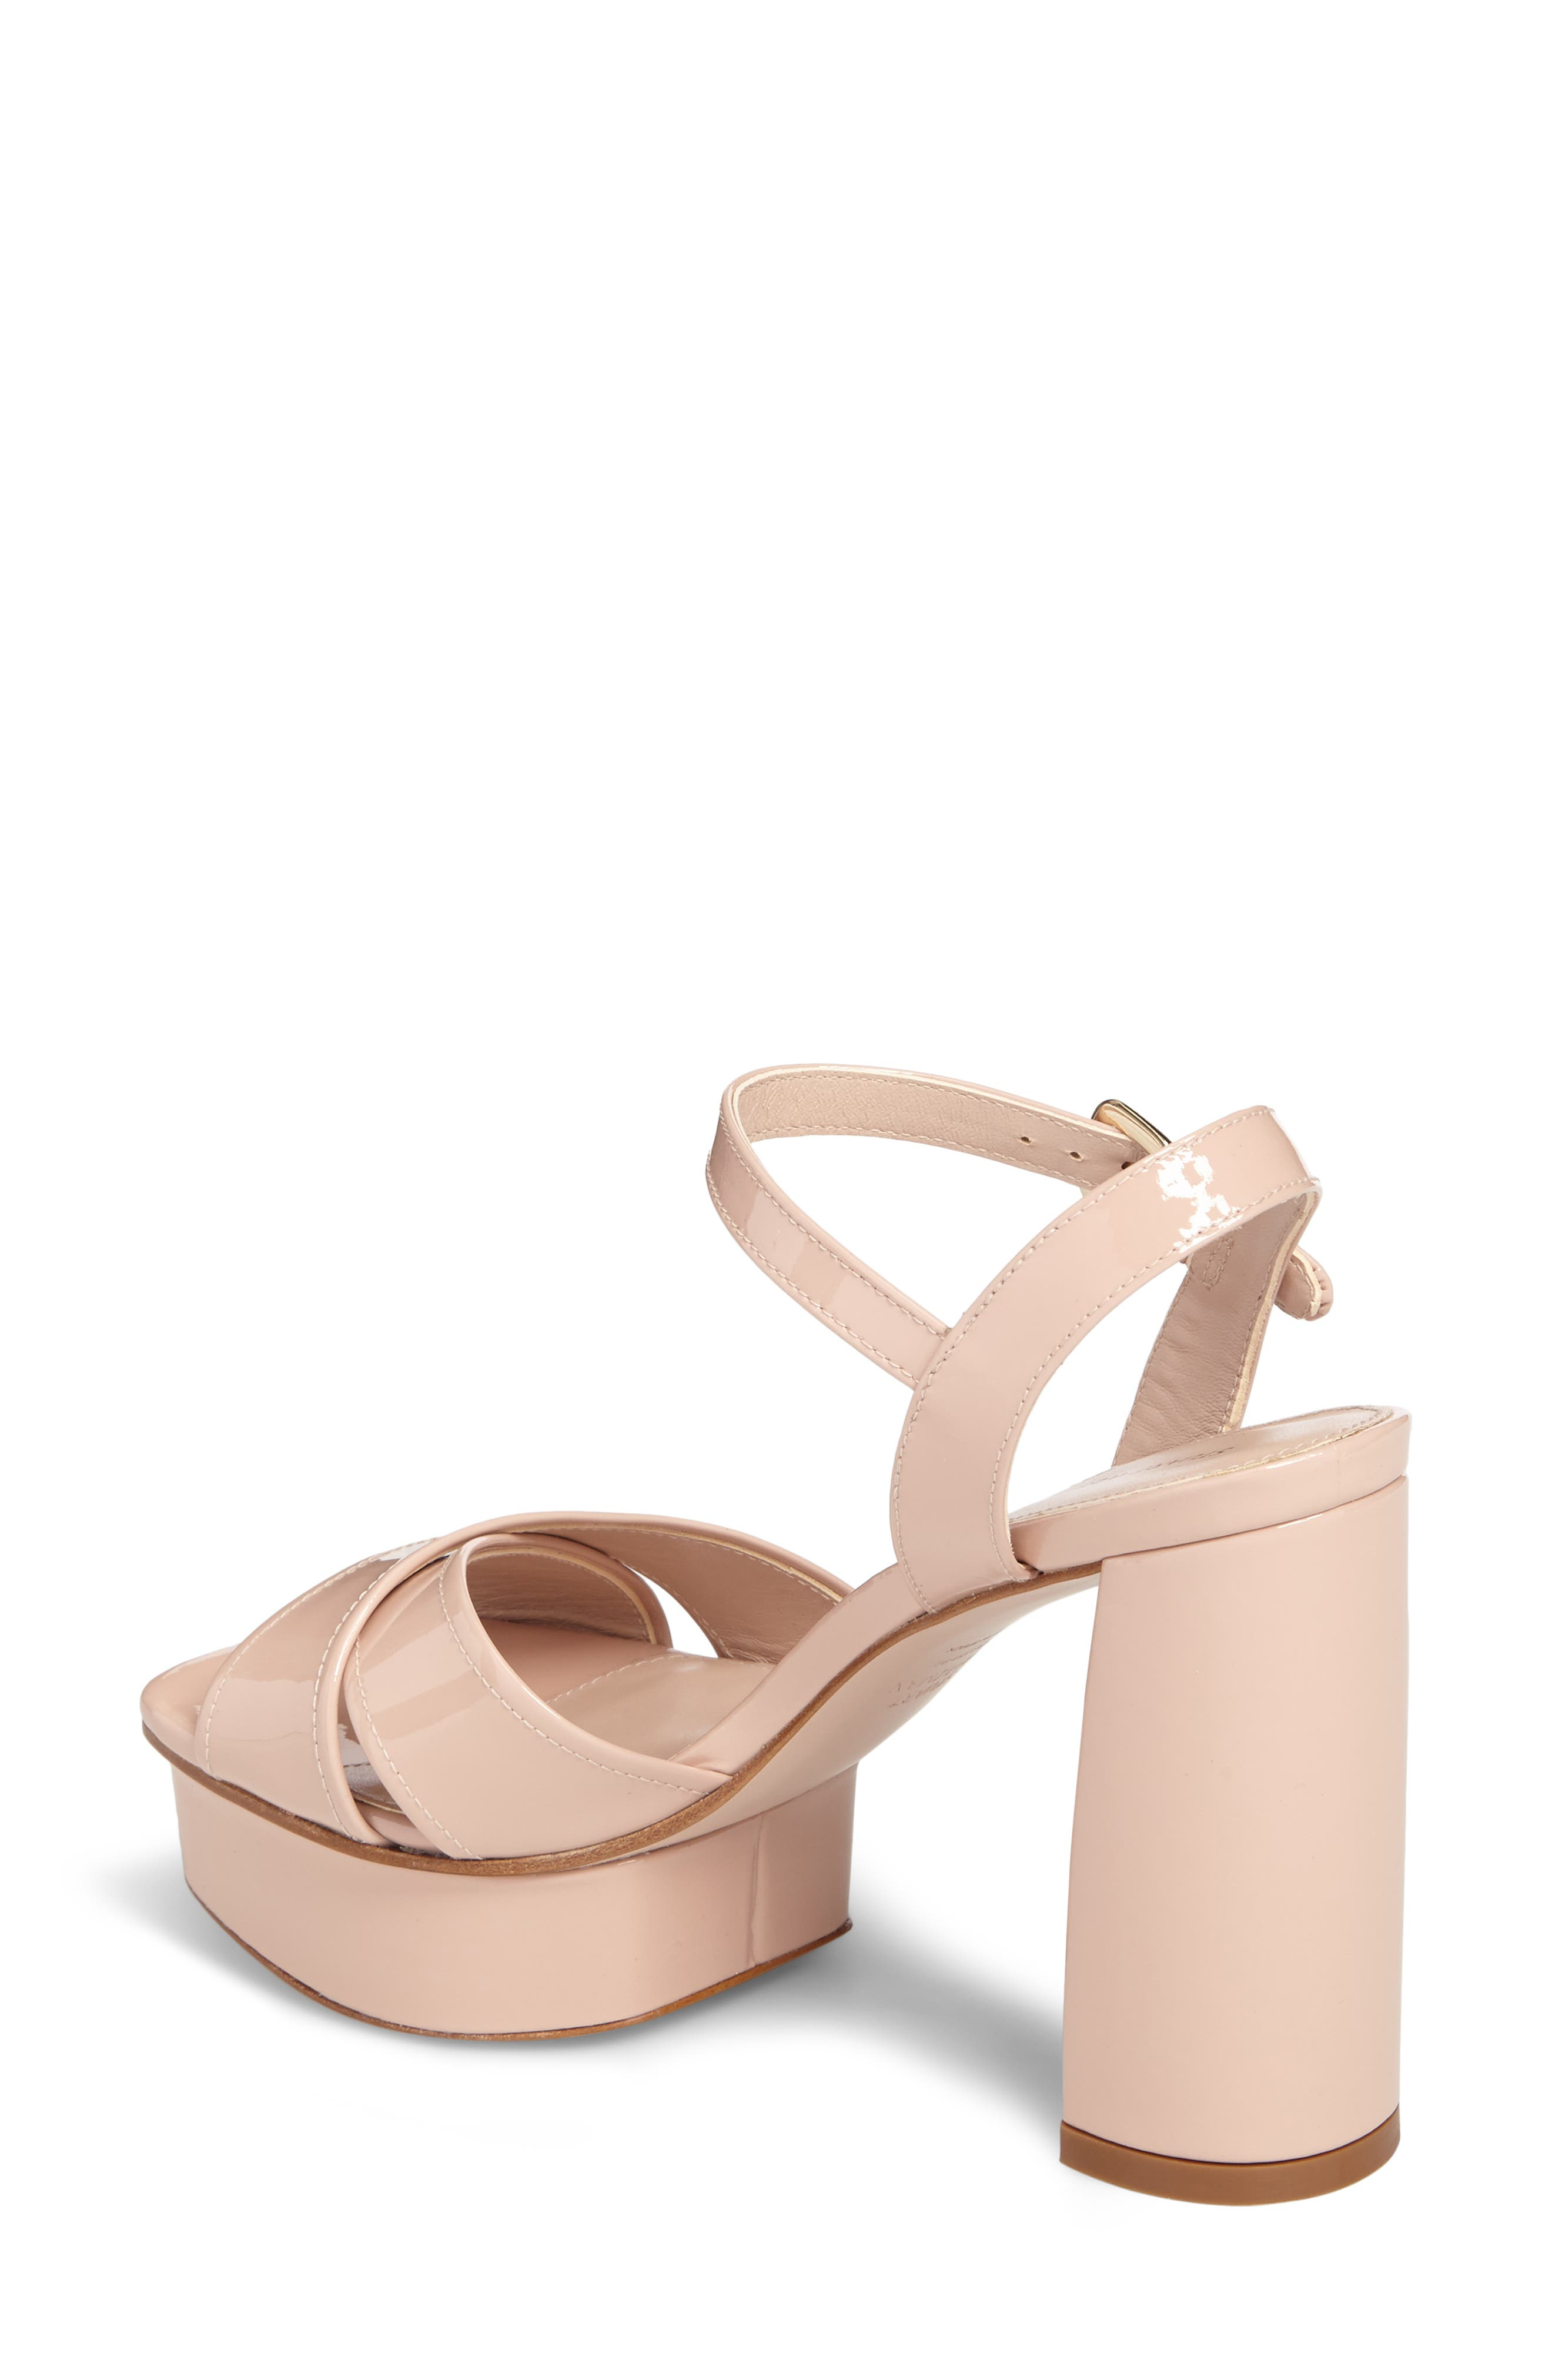 Exposed Platform Sandal,                             Alternate thumbnail 8, color,